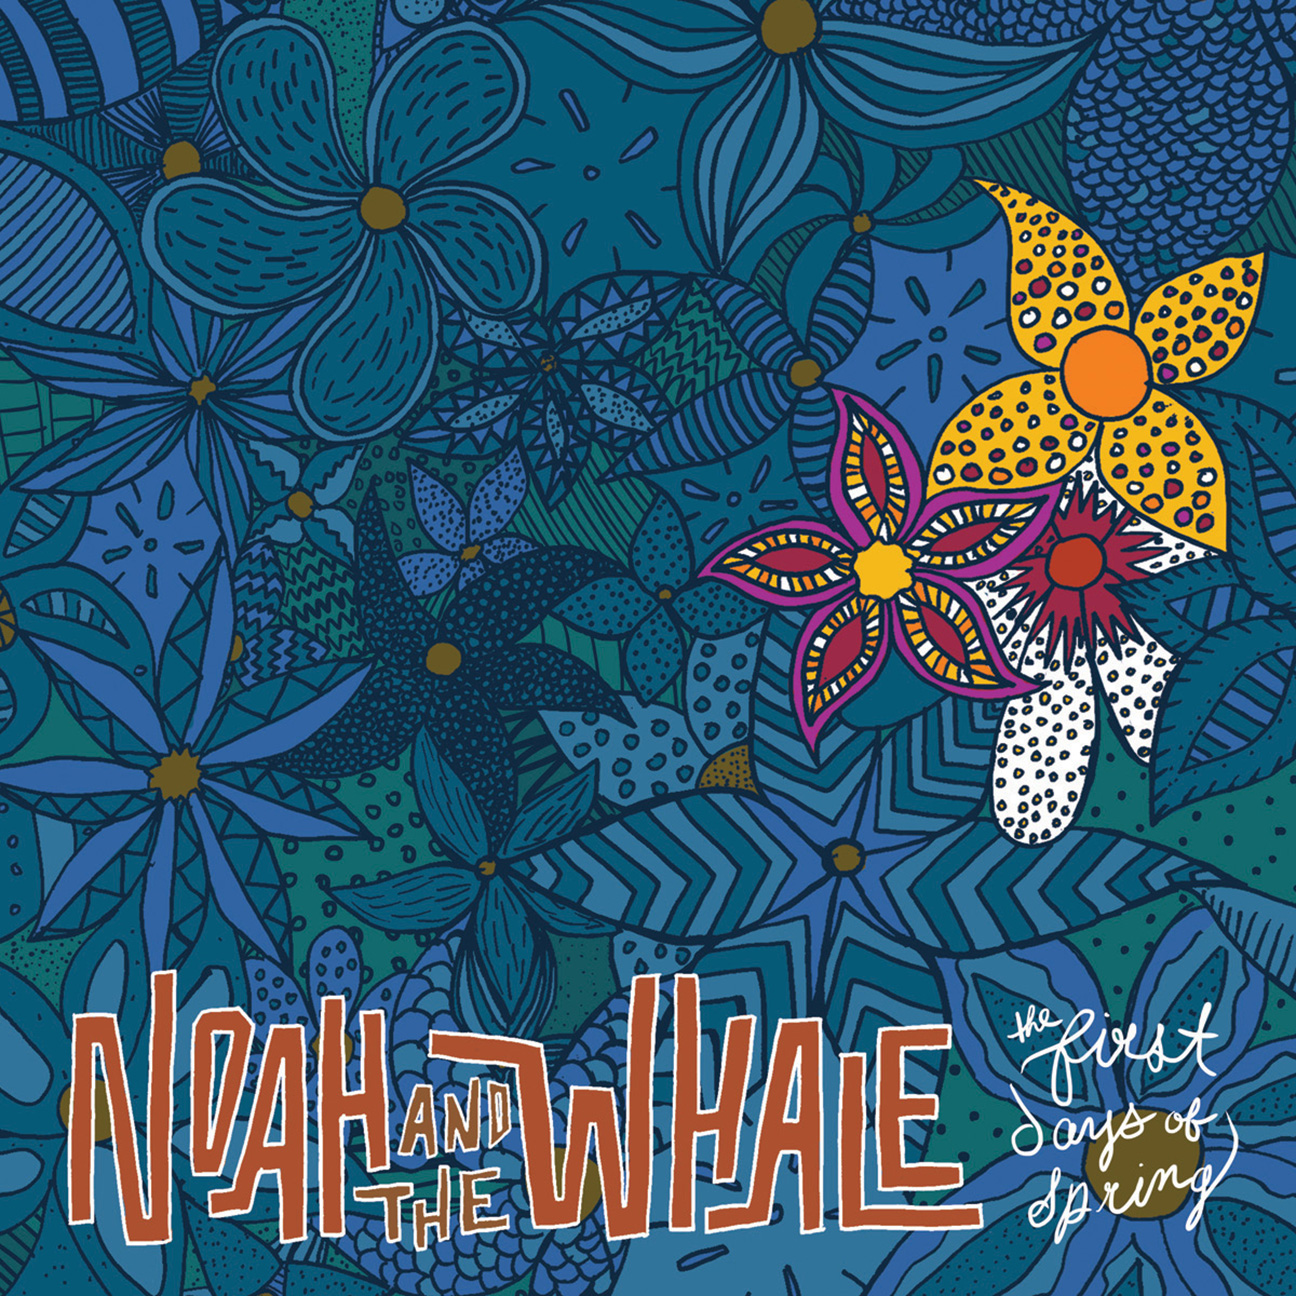 noah_and_the_whale_album_art_1.jpg